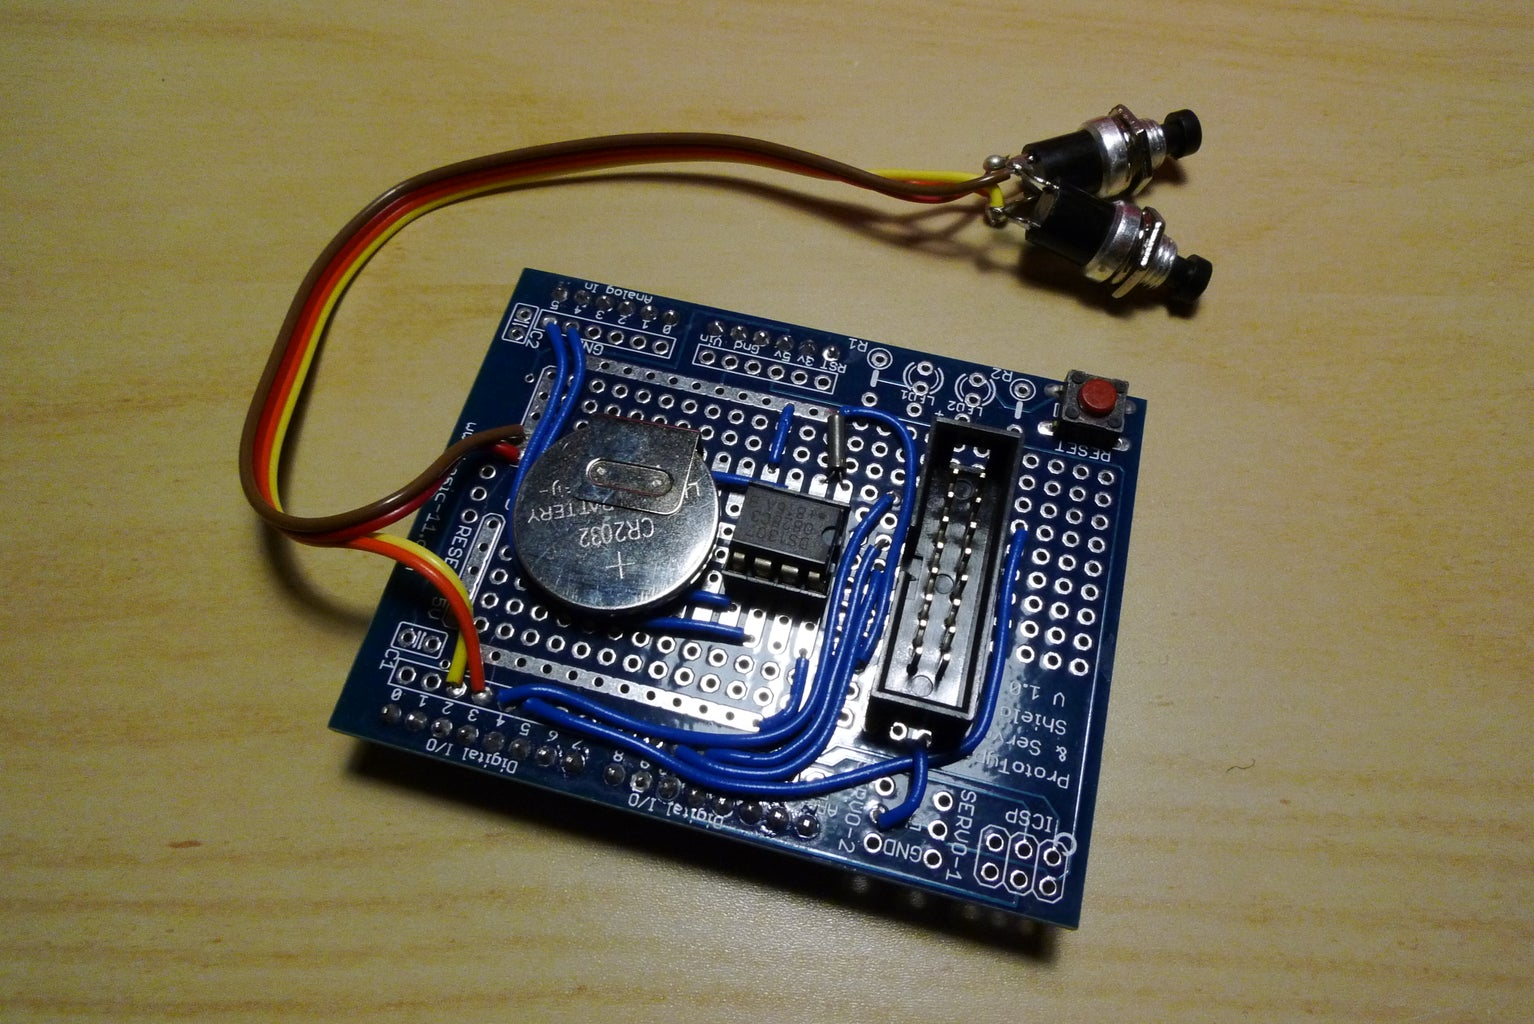 About the Prototyping Board